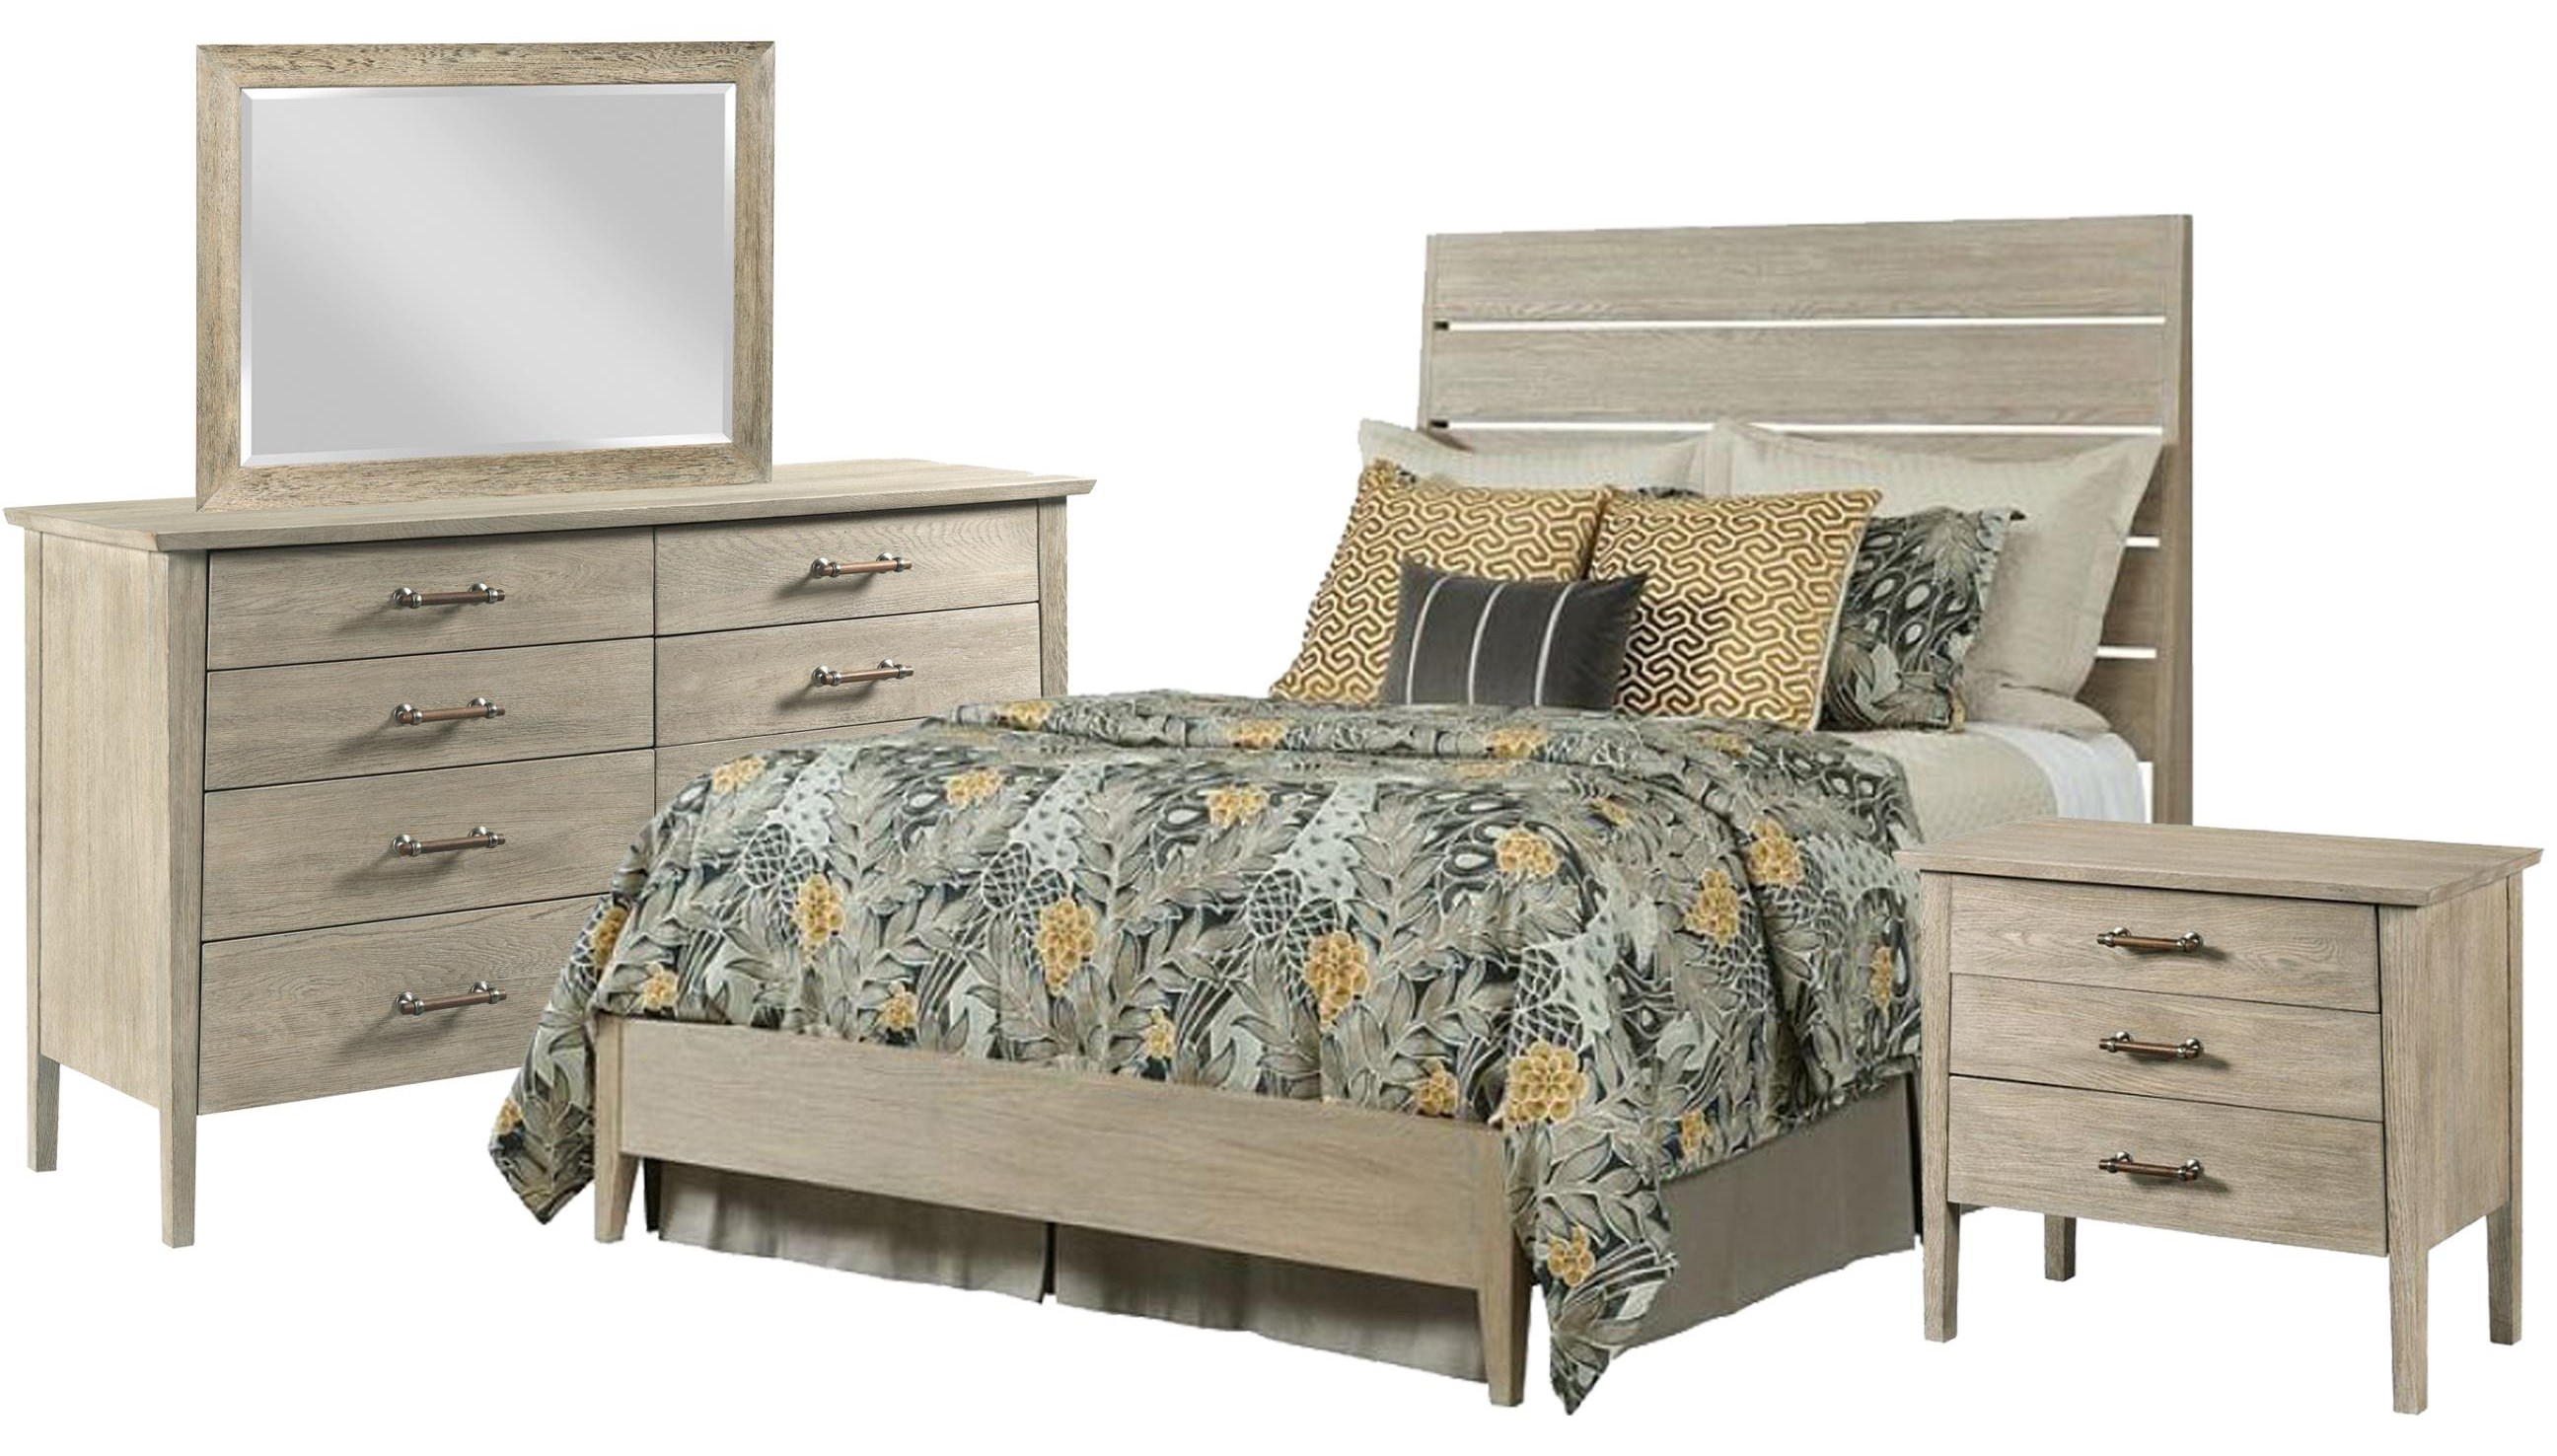 Symmetry Queen Bed, Dresser, Mirror, Nightstand by Kincaid Furniture at Johnny Janosik